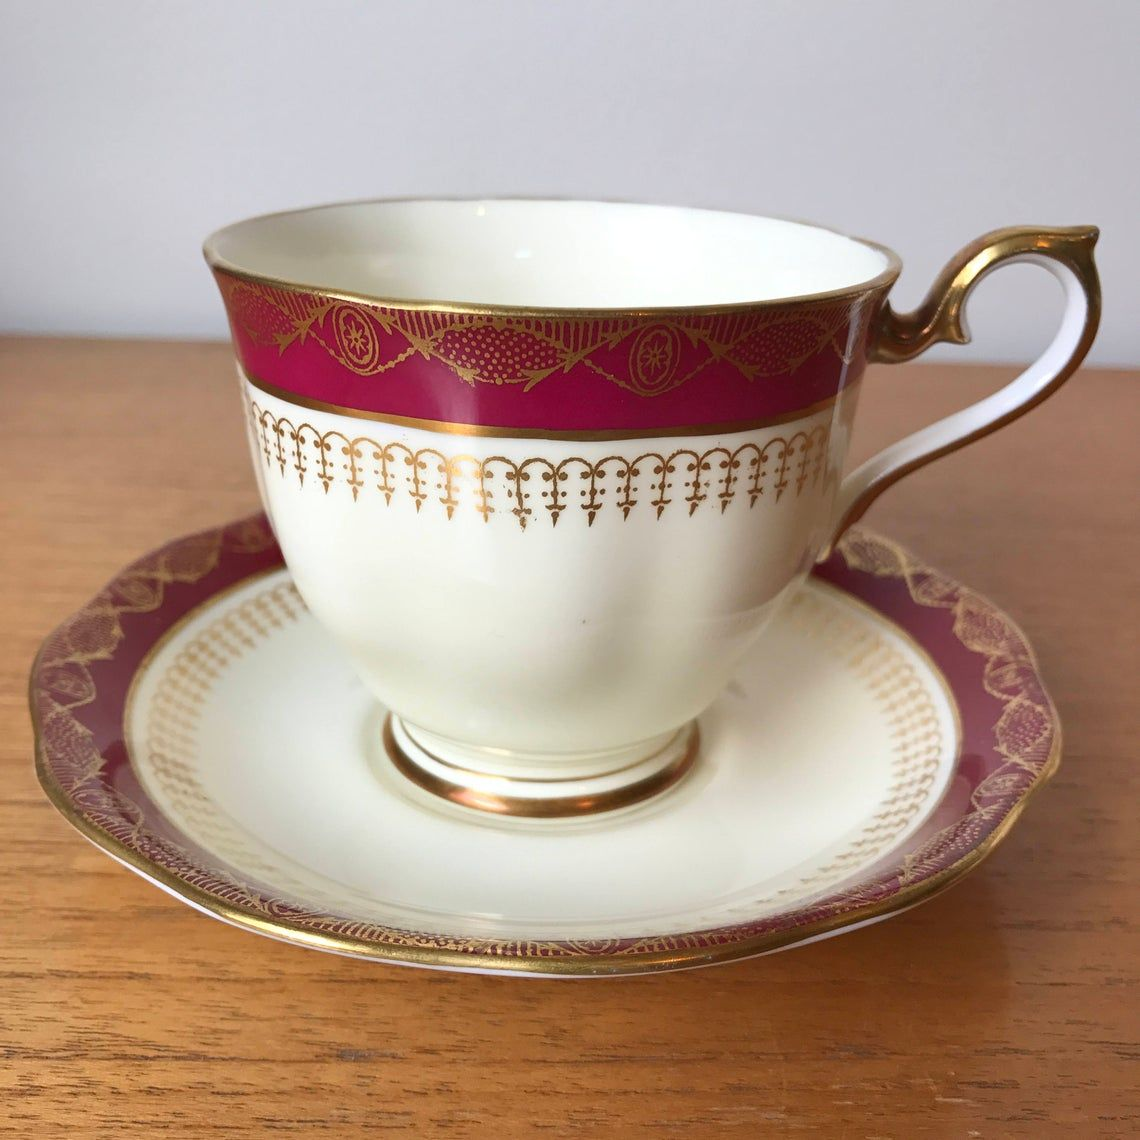 Royal Albert Vintage Tea Cup and Saucer, Red Cream and Gold Teacup and Saucer, UnNamed Pattern, Fine Bone China